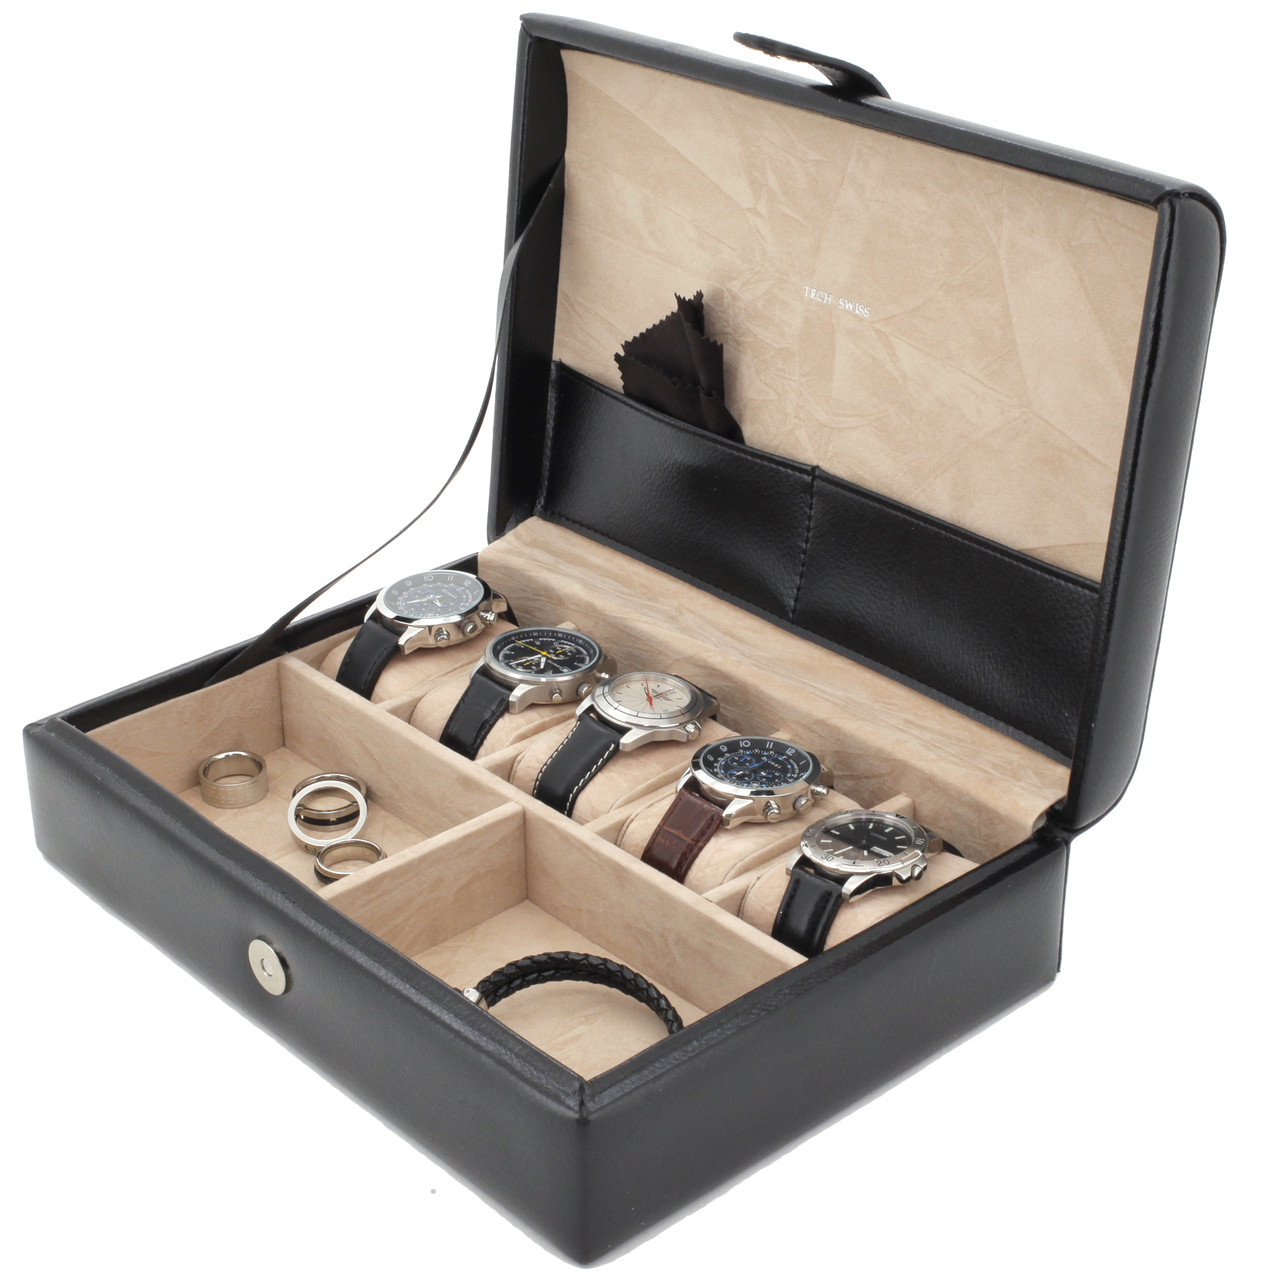 Wonderful Mens Leather Valet For Watches Rings & Keys | TechSwiss Organizers RV63